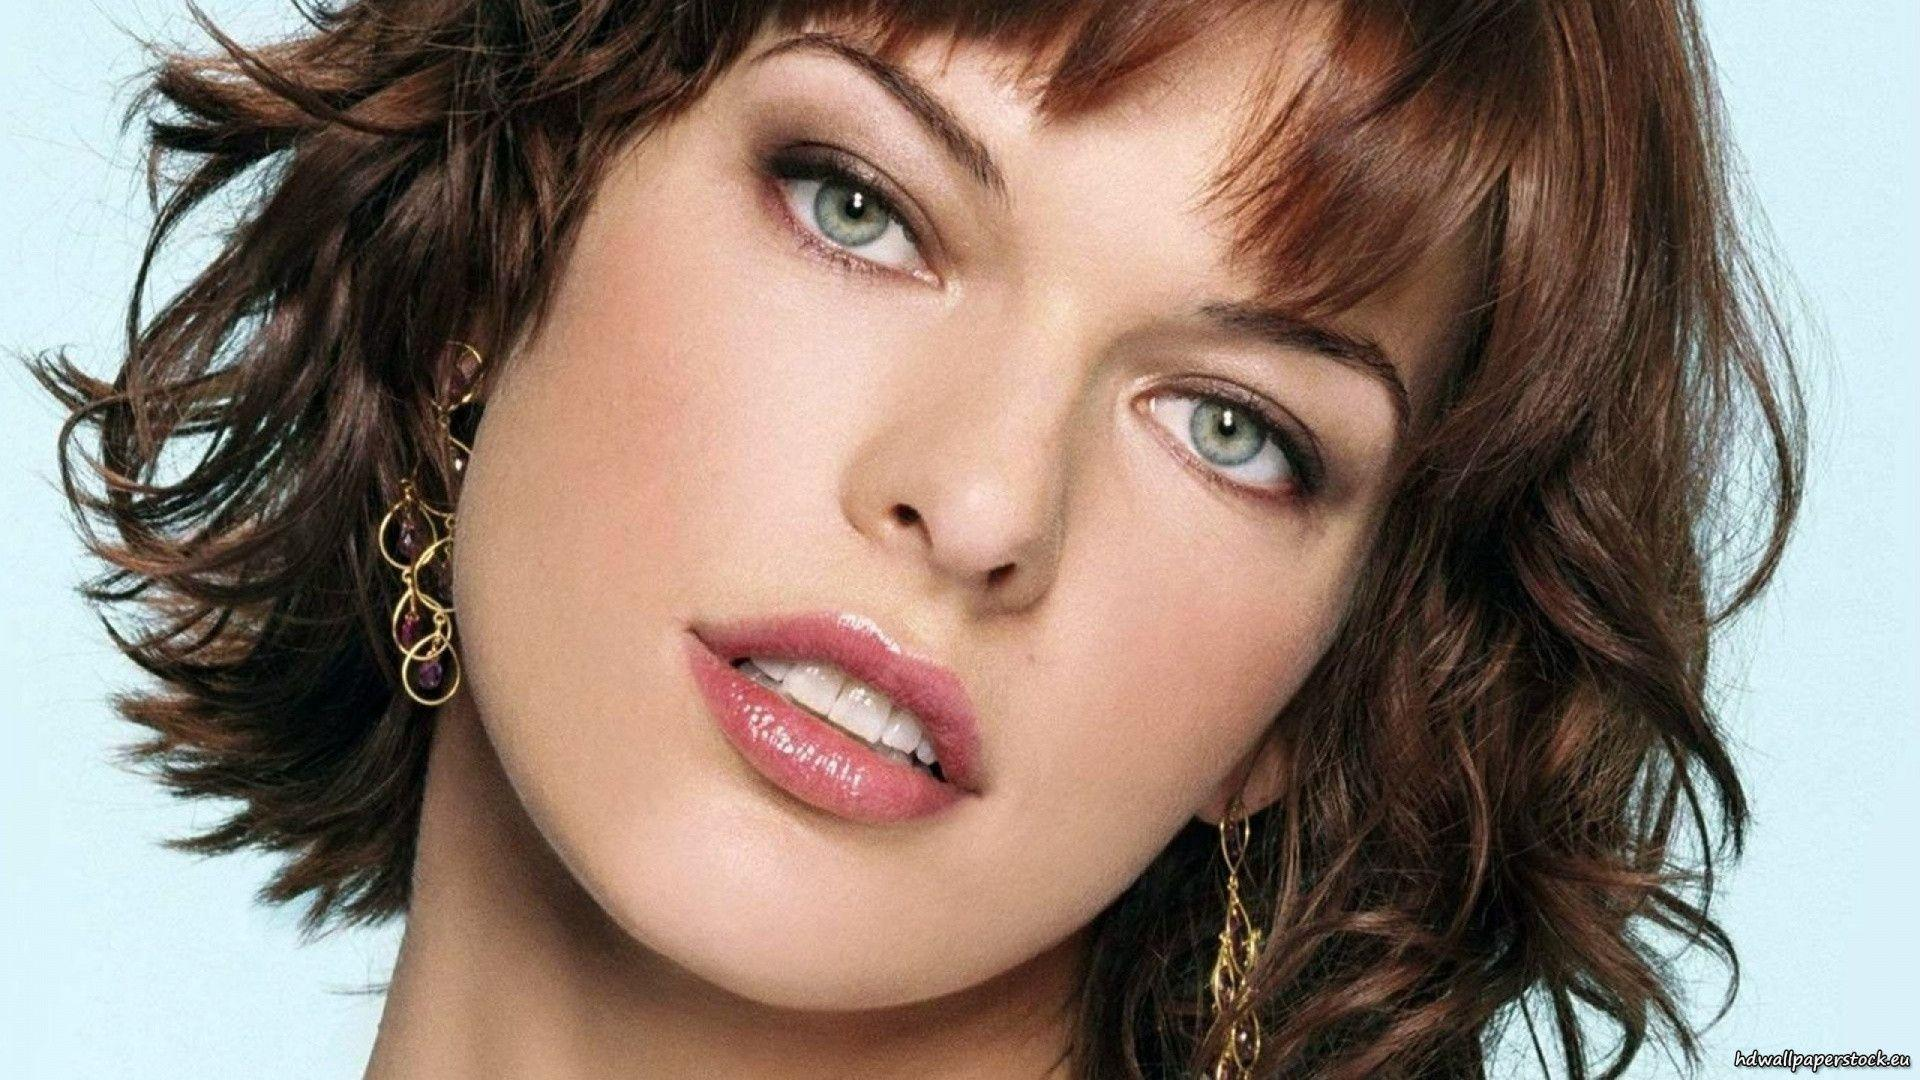 Milla Jovovich HD Wallpapers in 1920x1080 Resolution